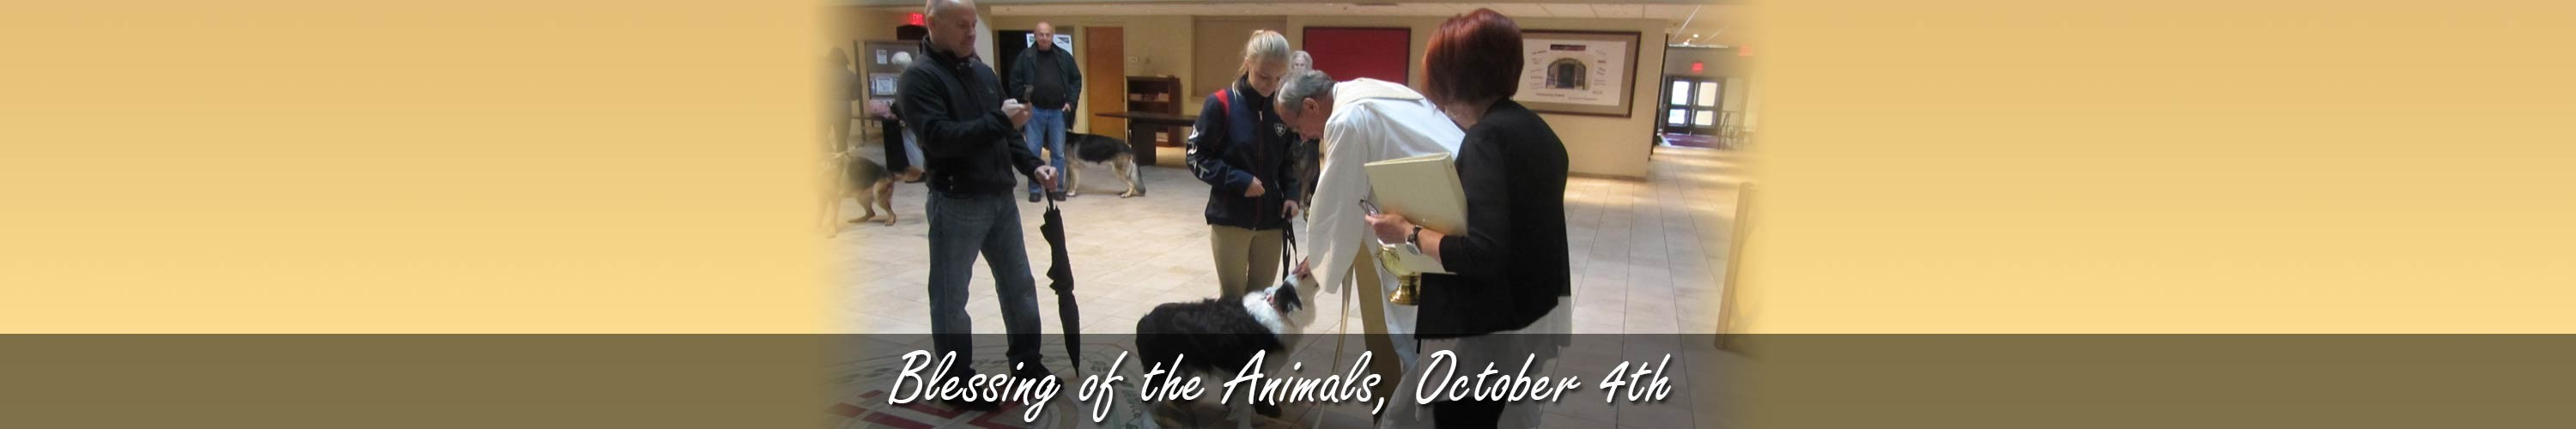 blessing-of-animals-slider